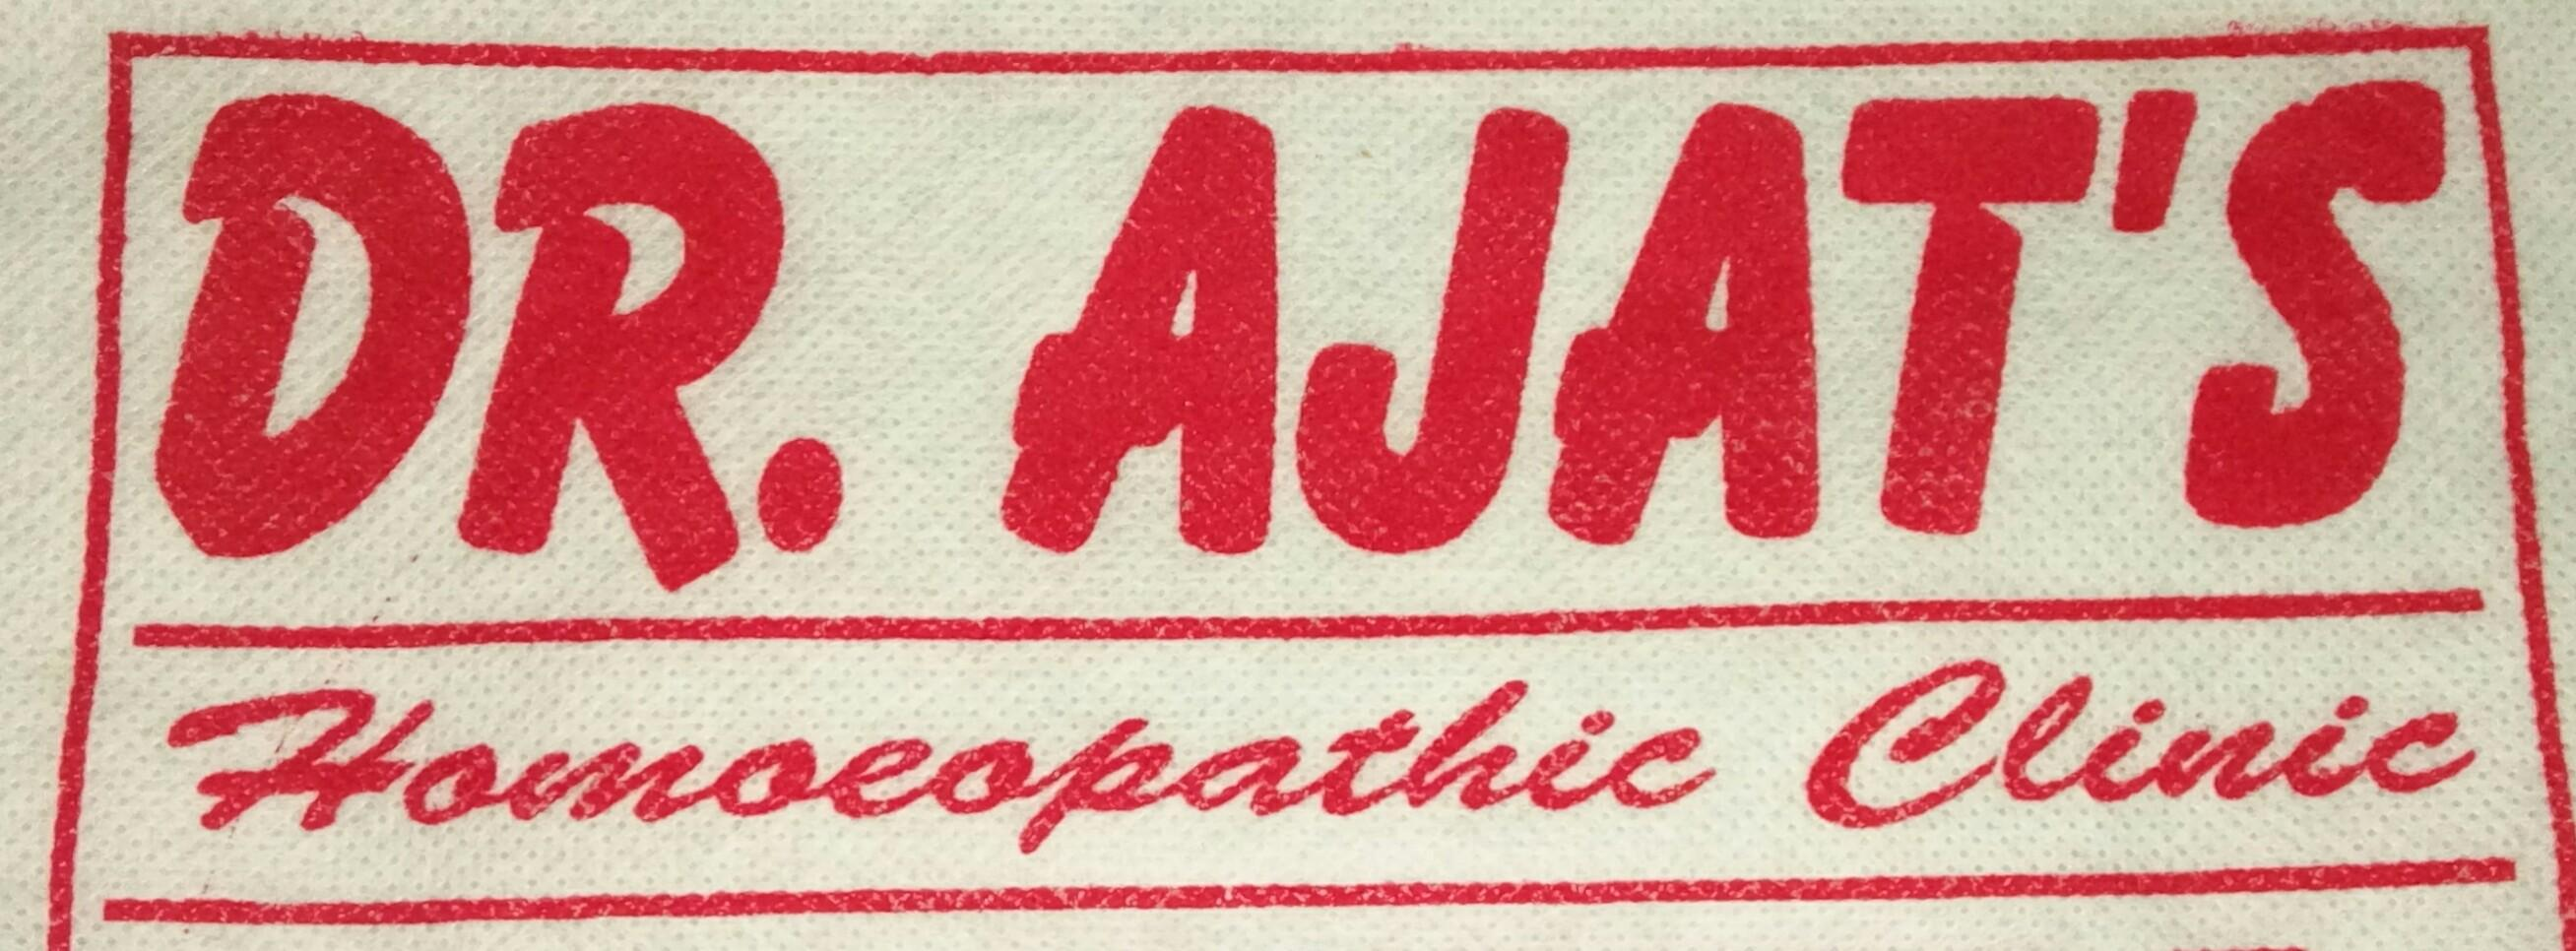 Dr. Ajat Shatru's Homoeopathic Clinic